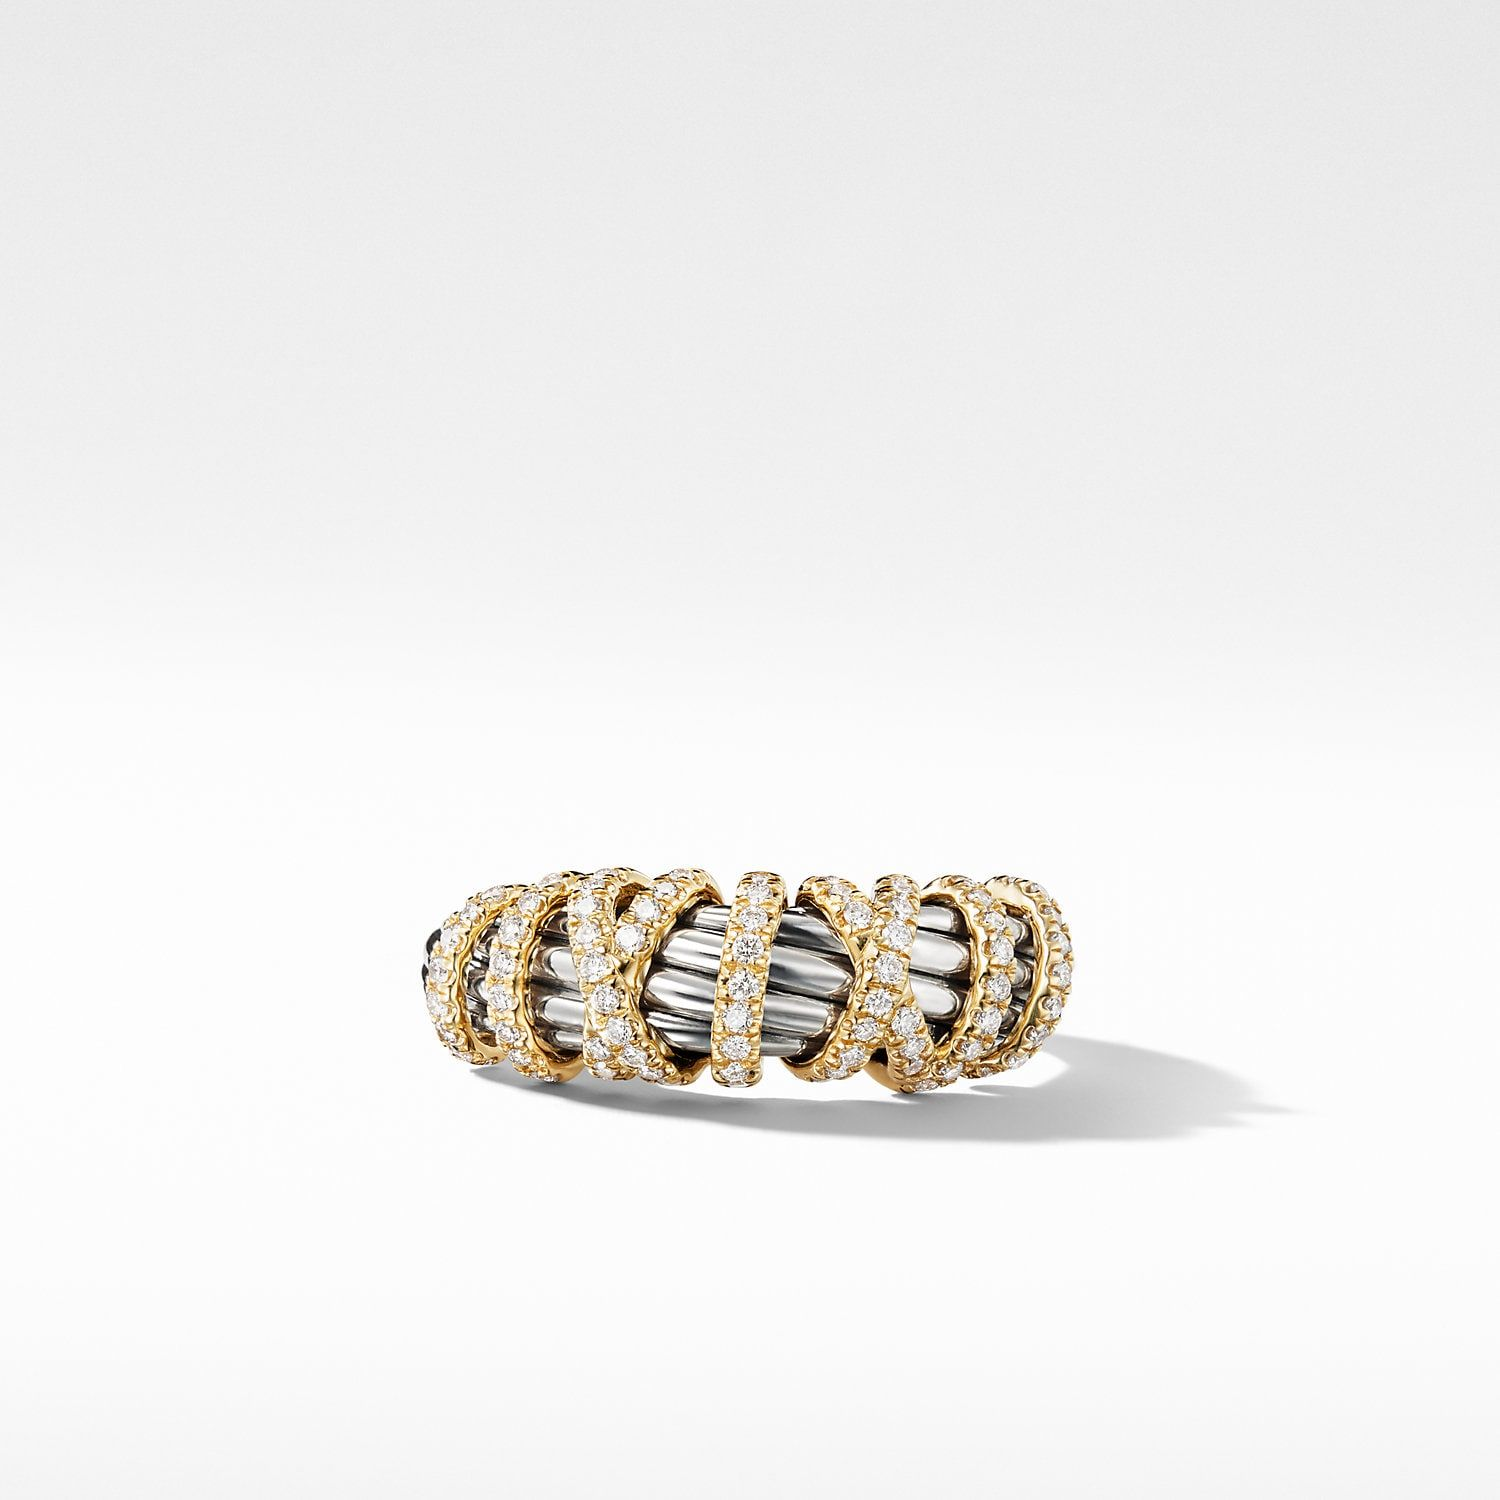 Helena Ring With Diamonds And 18k Gold 8mm David Yurman Women Rings Pearl Cocktail Ring Rings